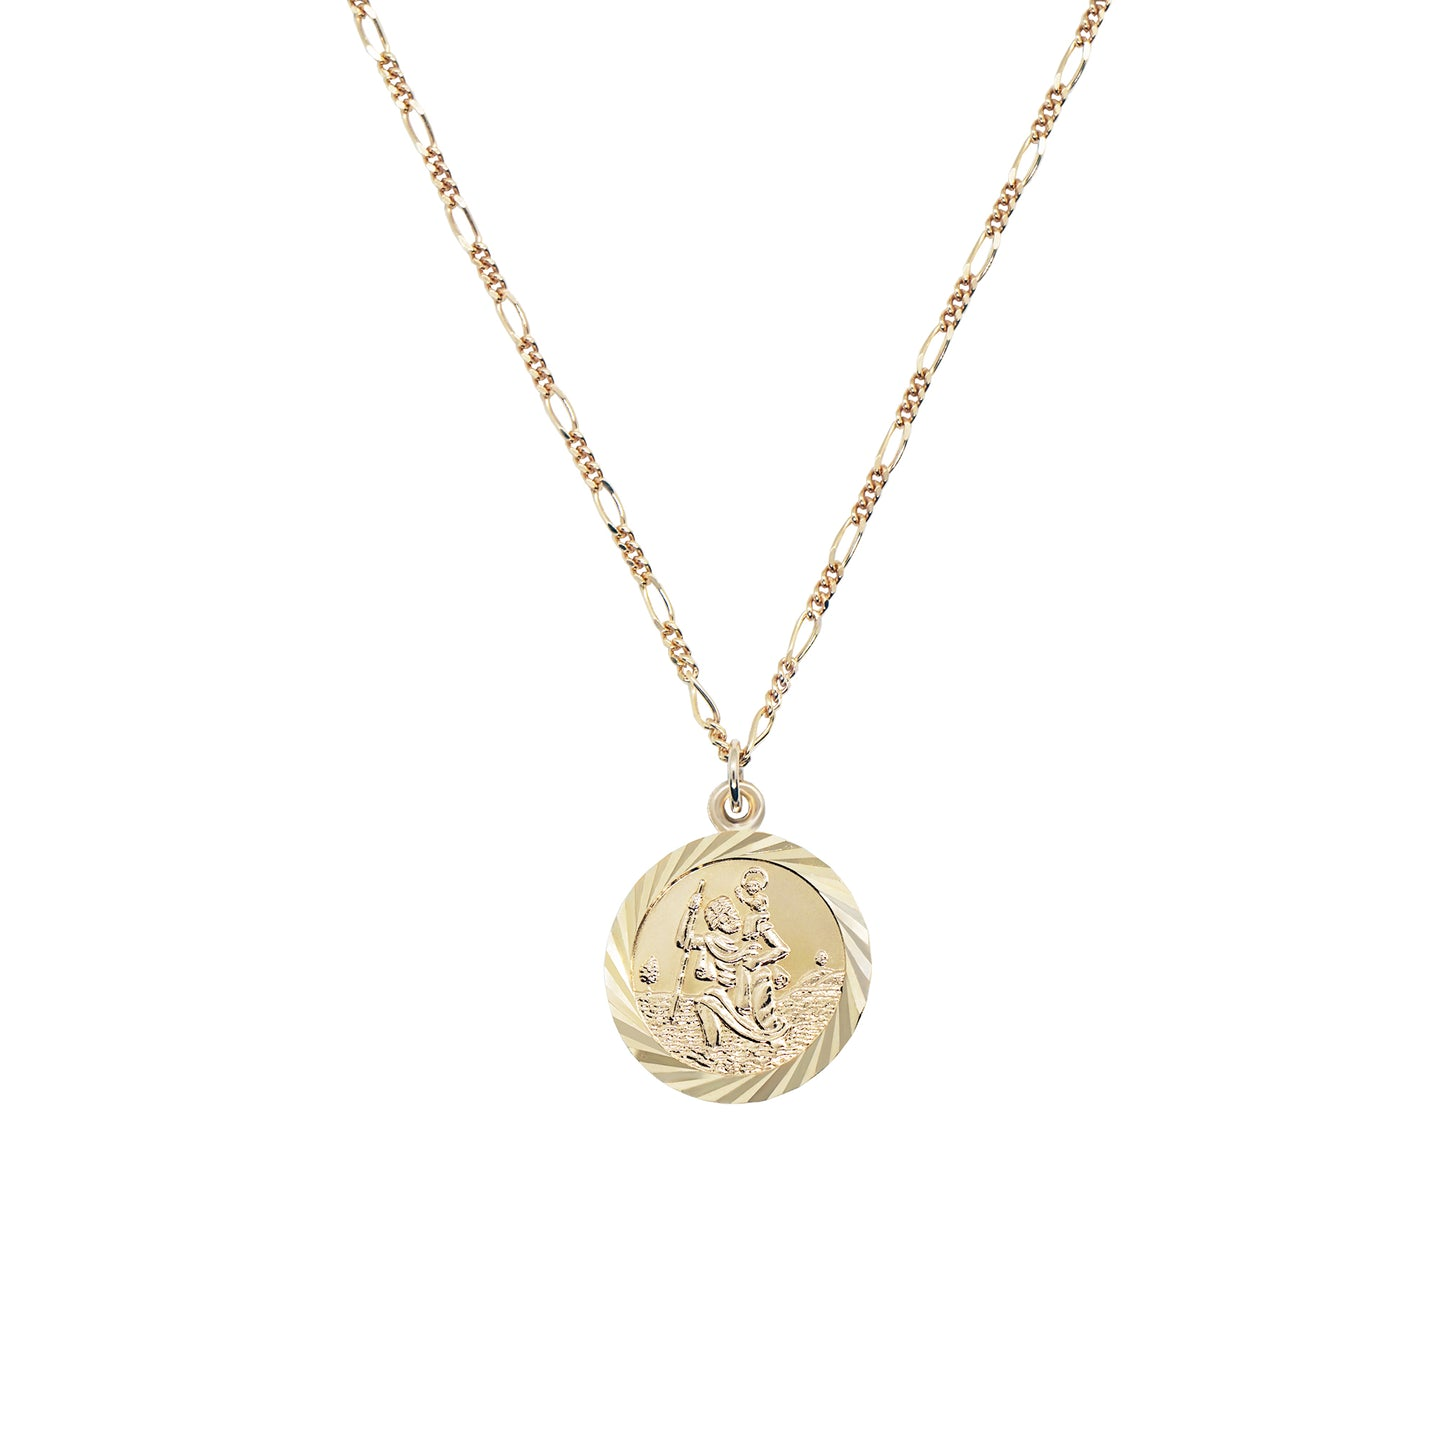 close up product shot of 9K gold st christopher coin necklace on a white background.